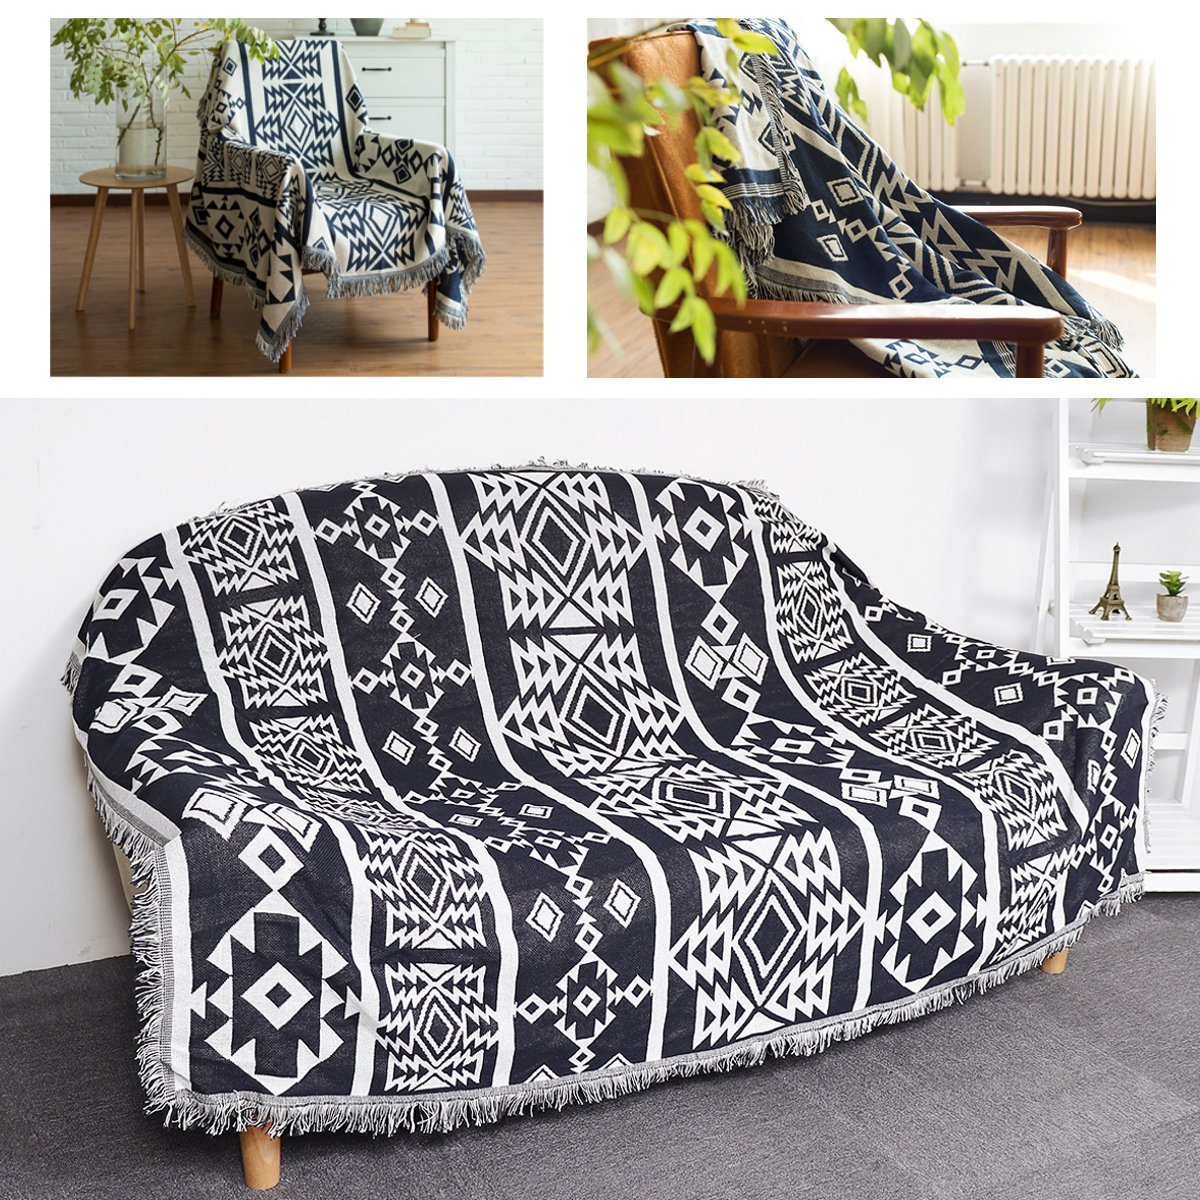 Lounge Throw New Bohemian Boho Sofa Throw Rug Couch Lounge Sofa Chair Blanket Bed Sheet